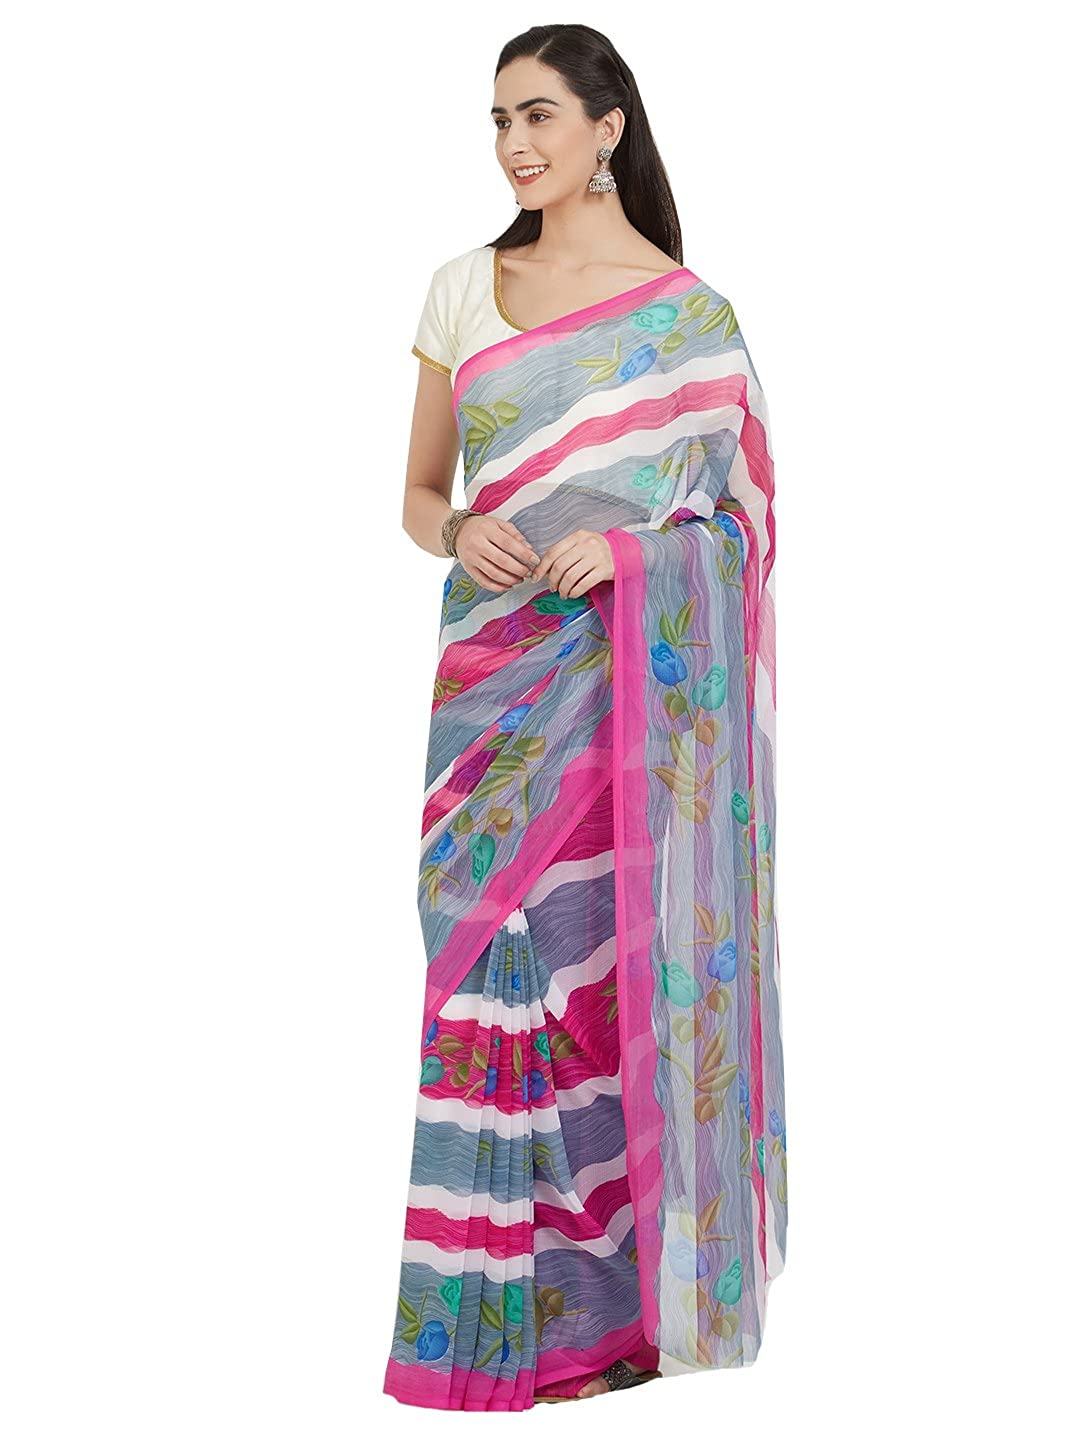 Nanda Silk Mills Multicolor Printed Chiffon Saree with Blouse Piece JF-Stripes-Pink